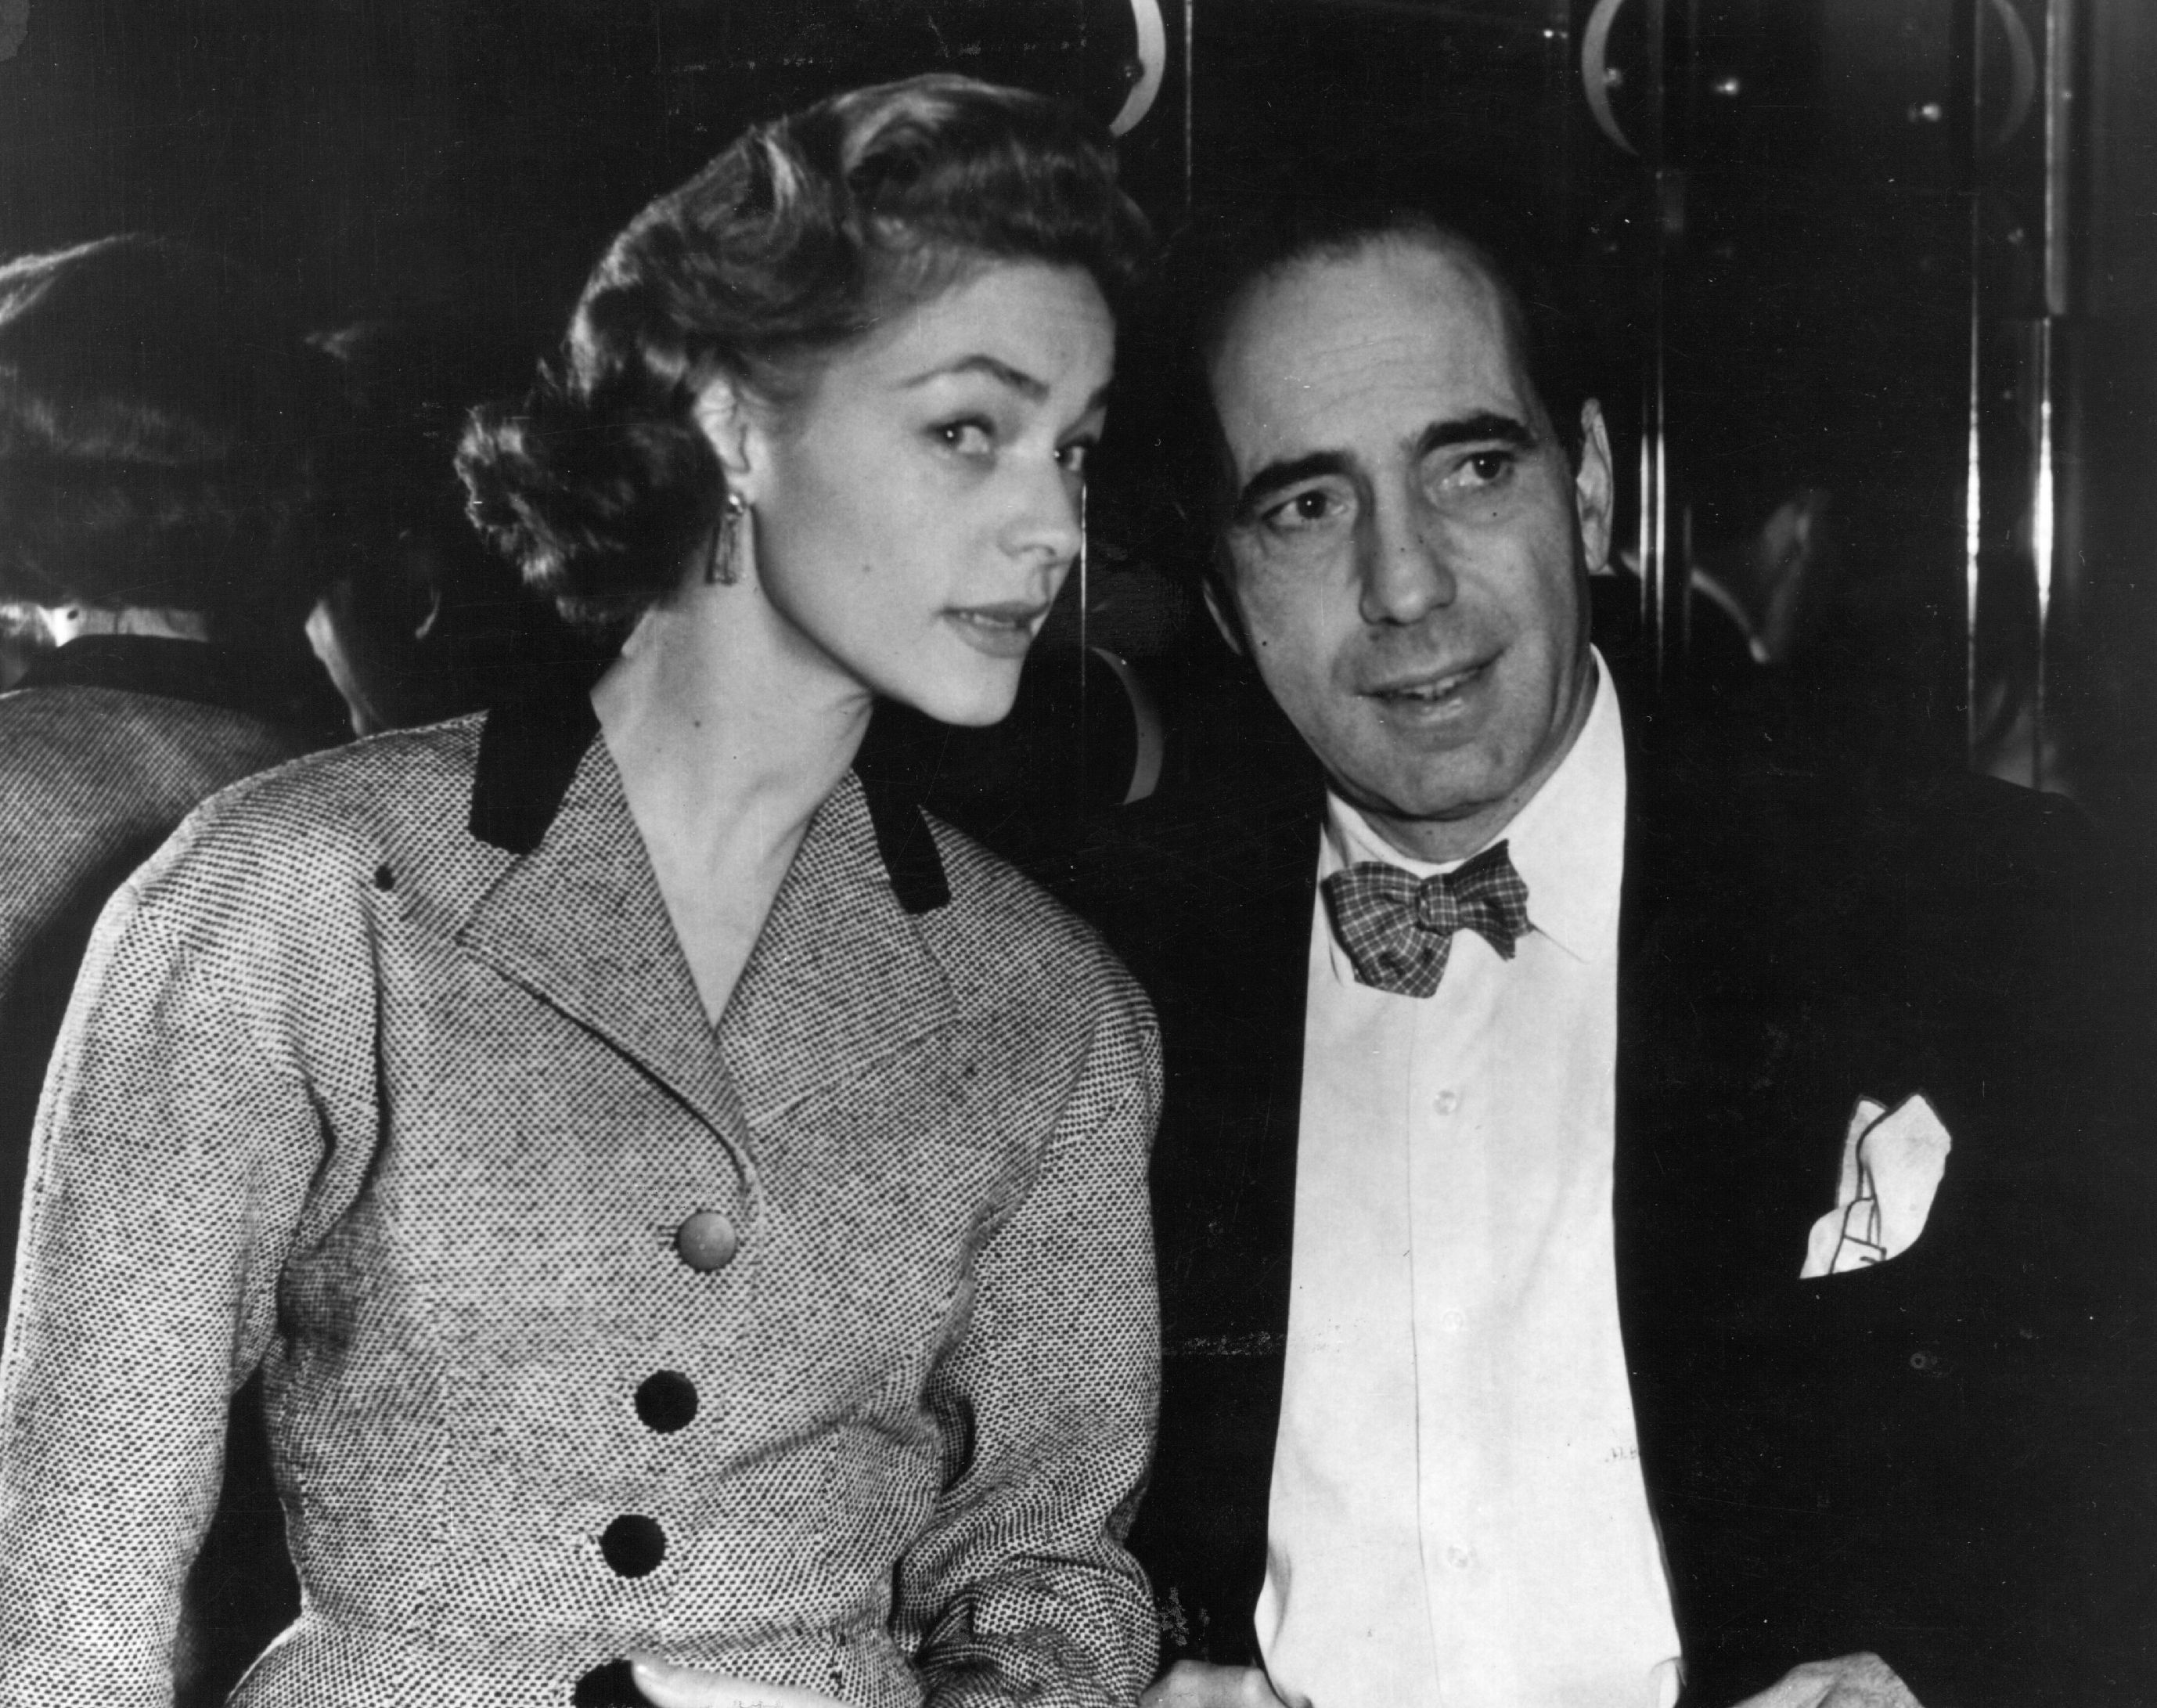 Humphrey De Forest Bogart (1899 - 1957), American film actor with his wife Lauren Bacall, originally Betty Joan Perske, an American actress, in 1951. | Source: Getty Images